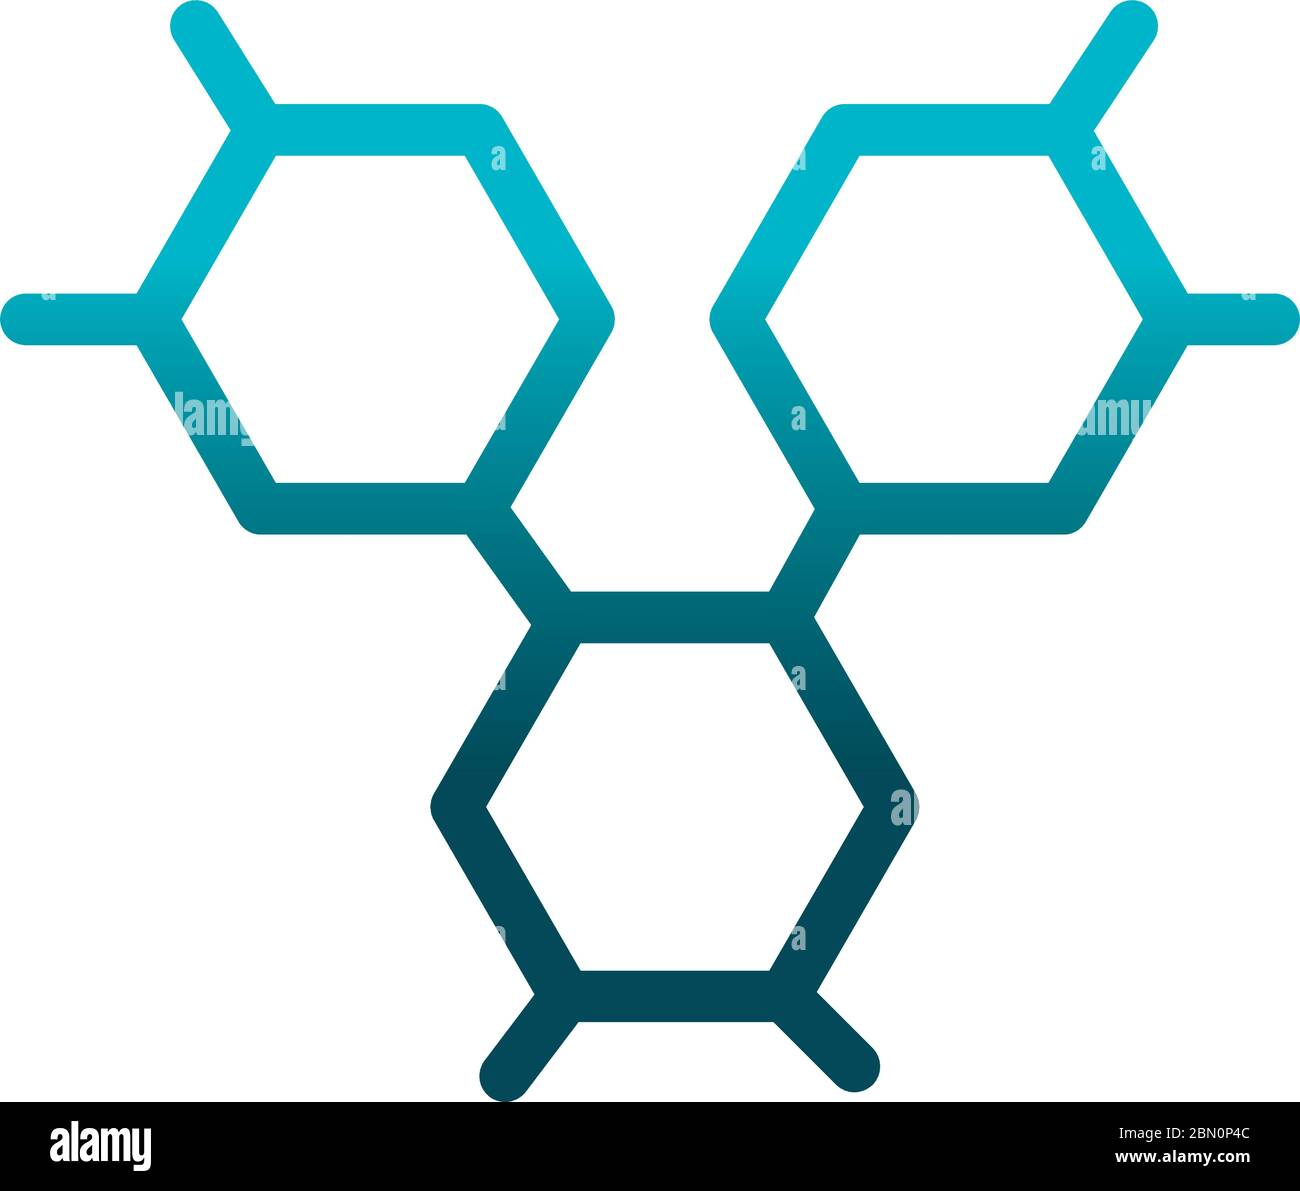 structure molecular laboratory science and research vector illustration gradient style icon Stock Vector